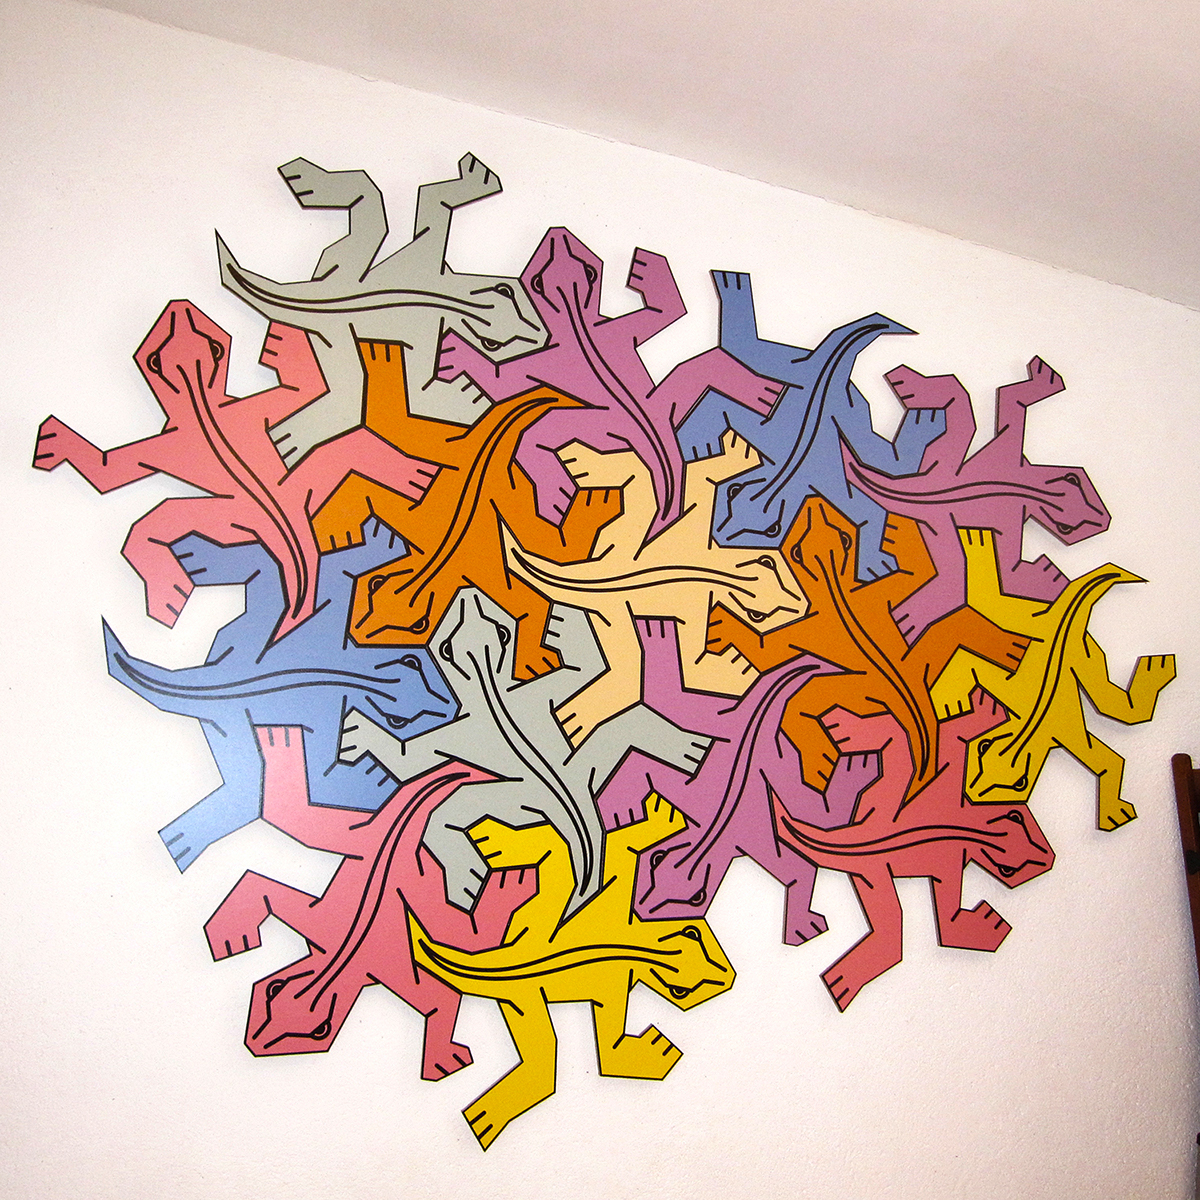 Escher puzzle on my wall